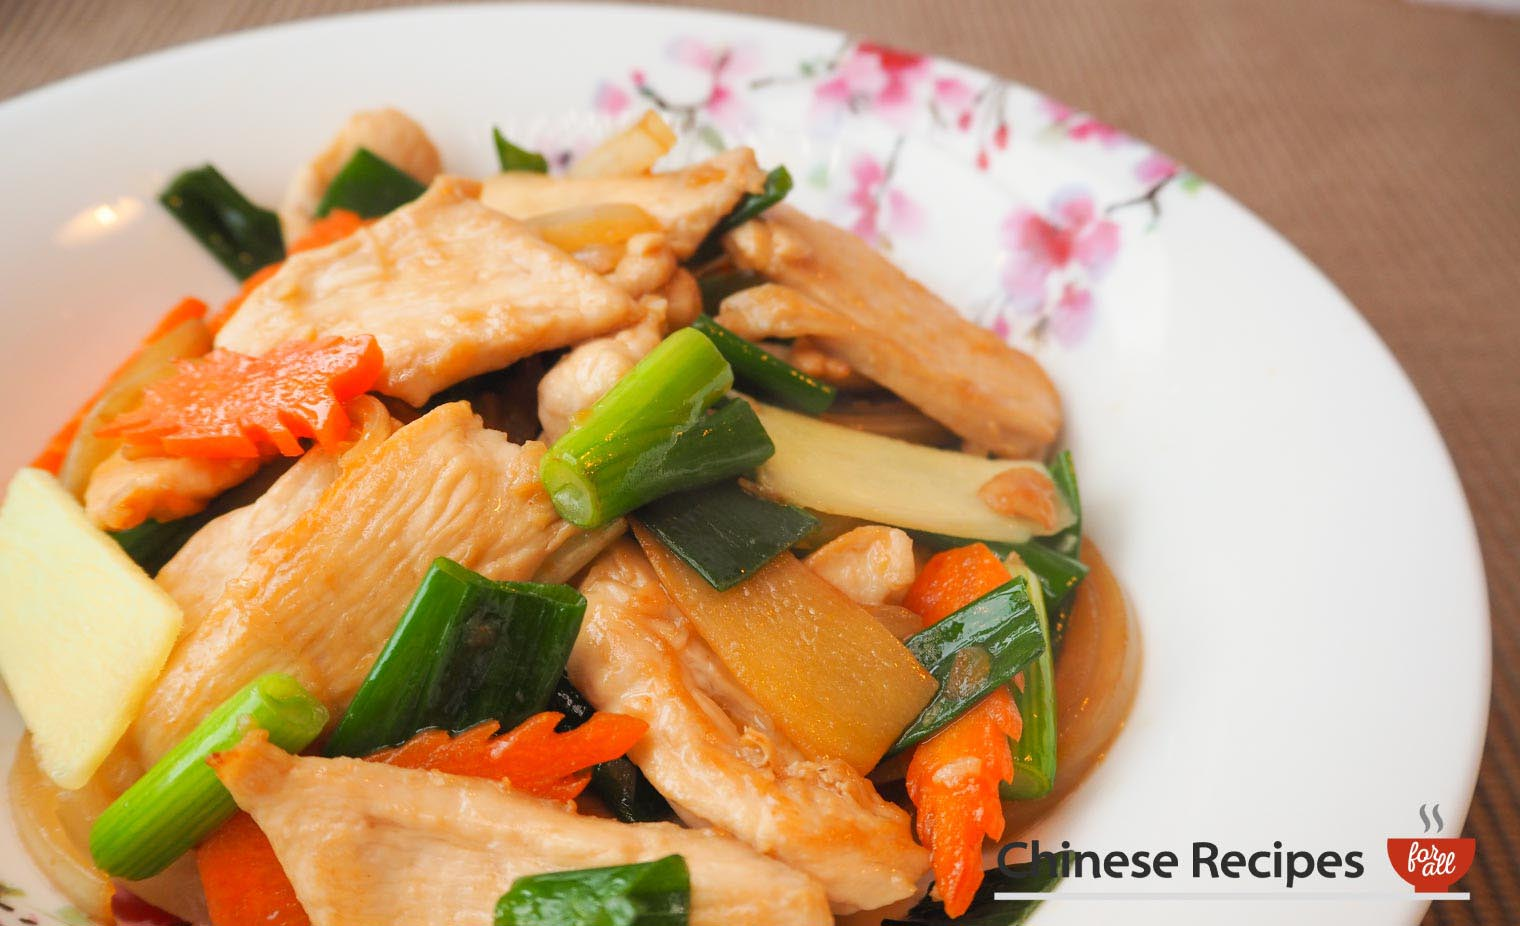 Chicken and Ginger with Spring Onion - Chinese Recipes For All